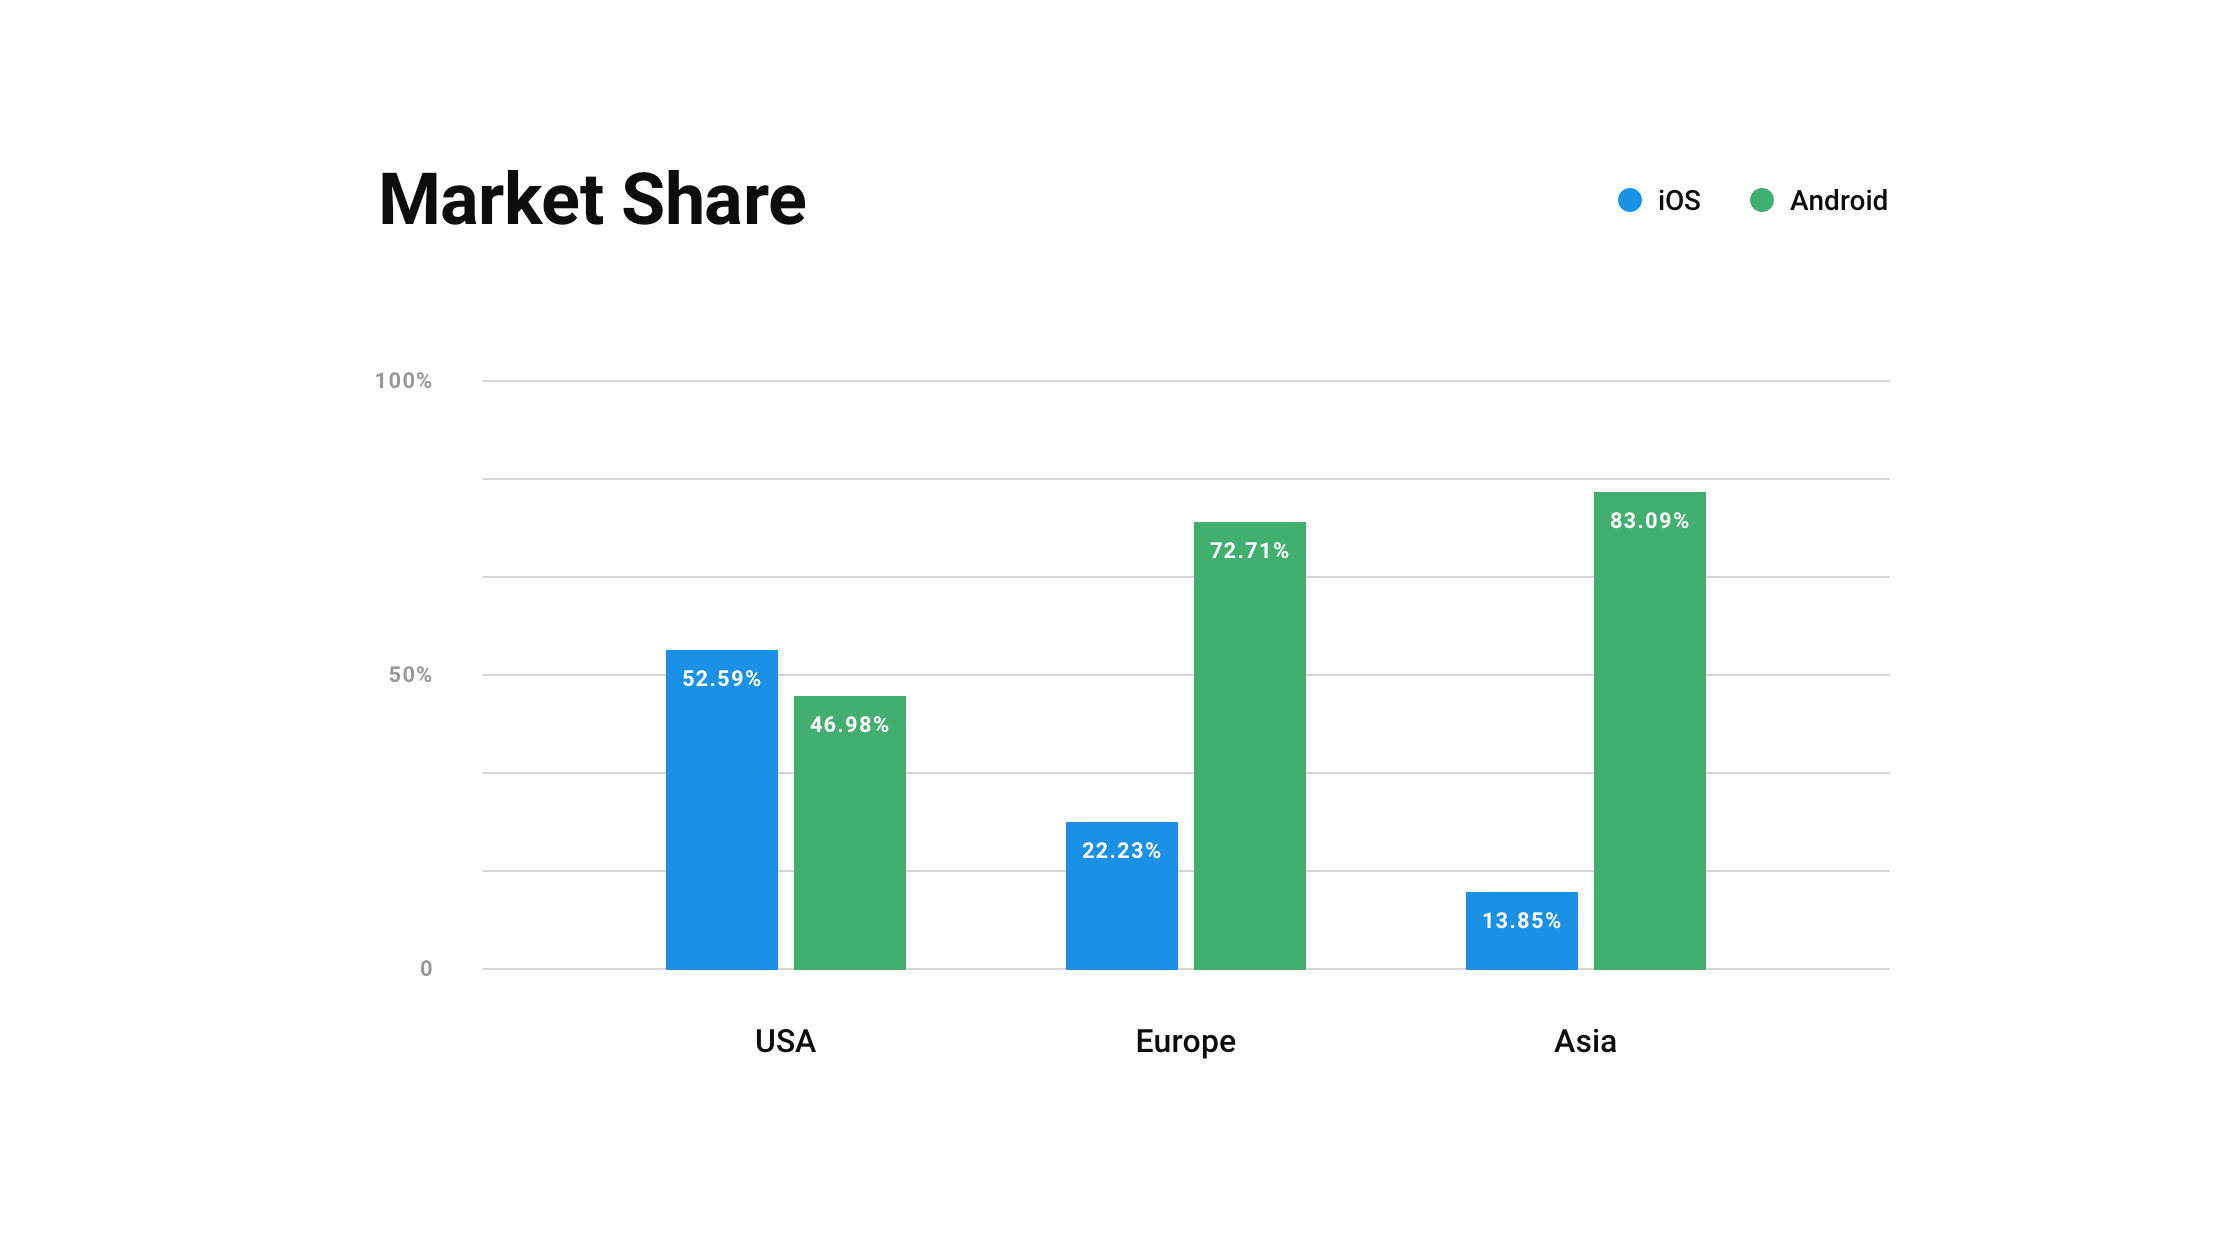 A market share diagram of iOS and Android in USA, Europe, and Asia